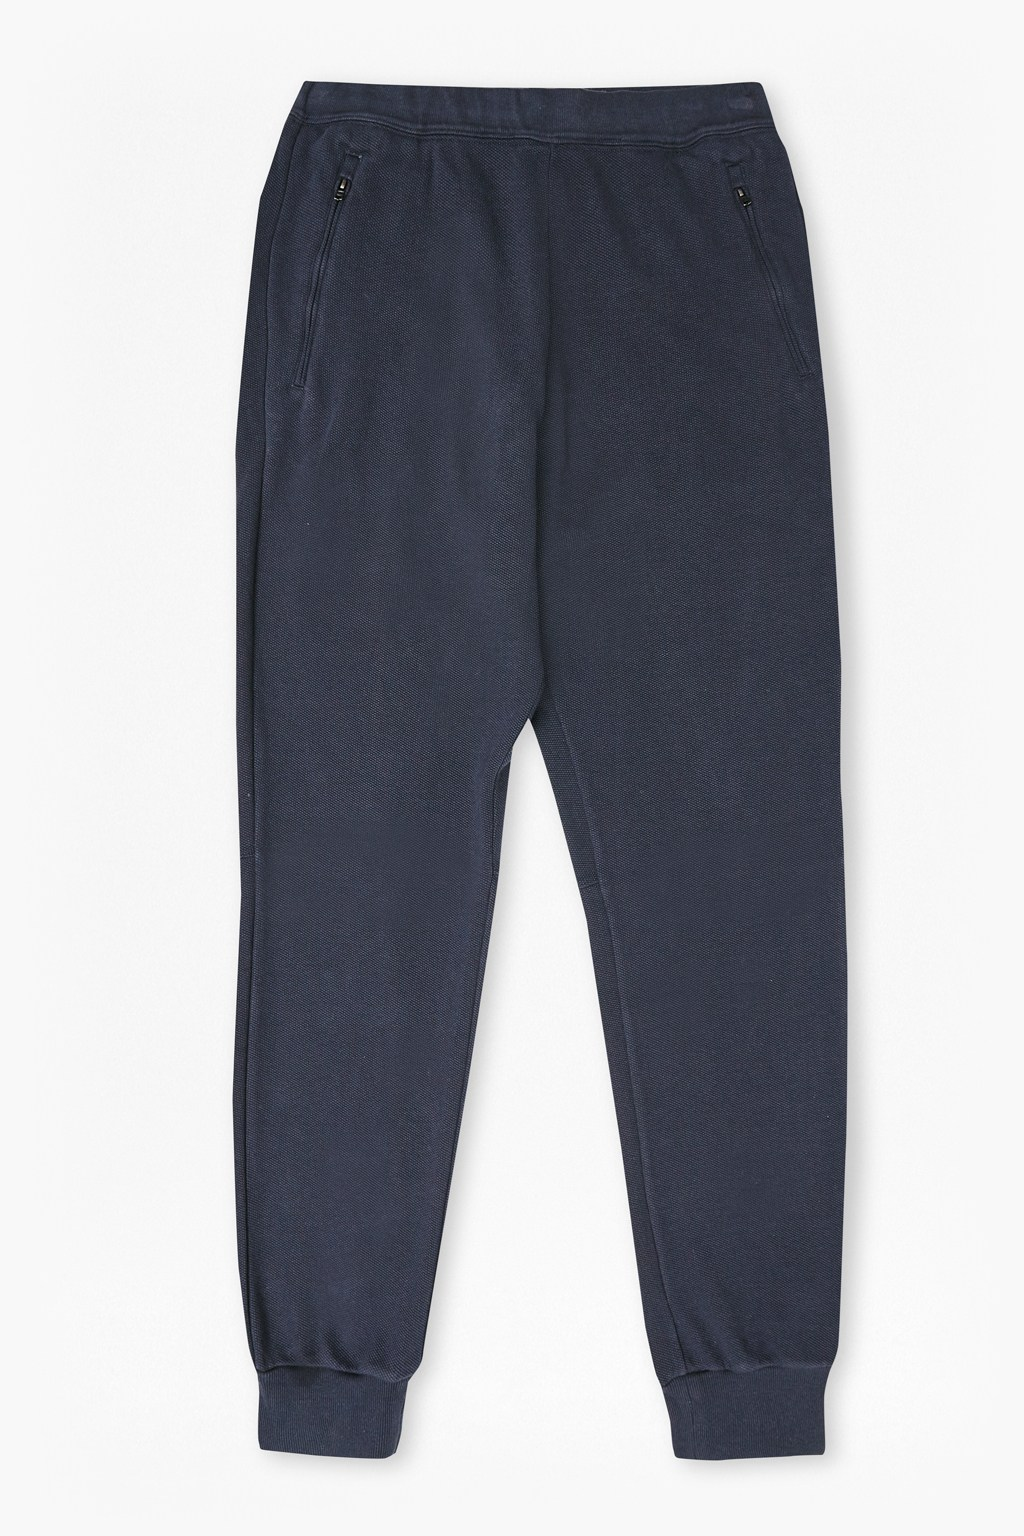 Winter Pique Sweat Joggers